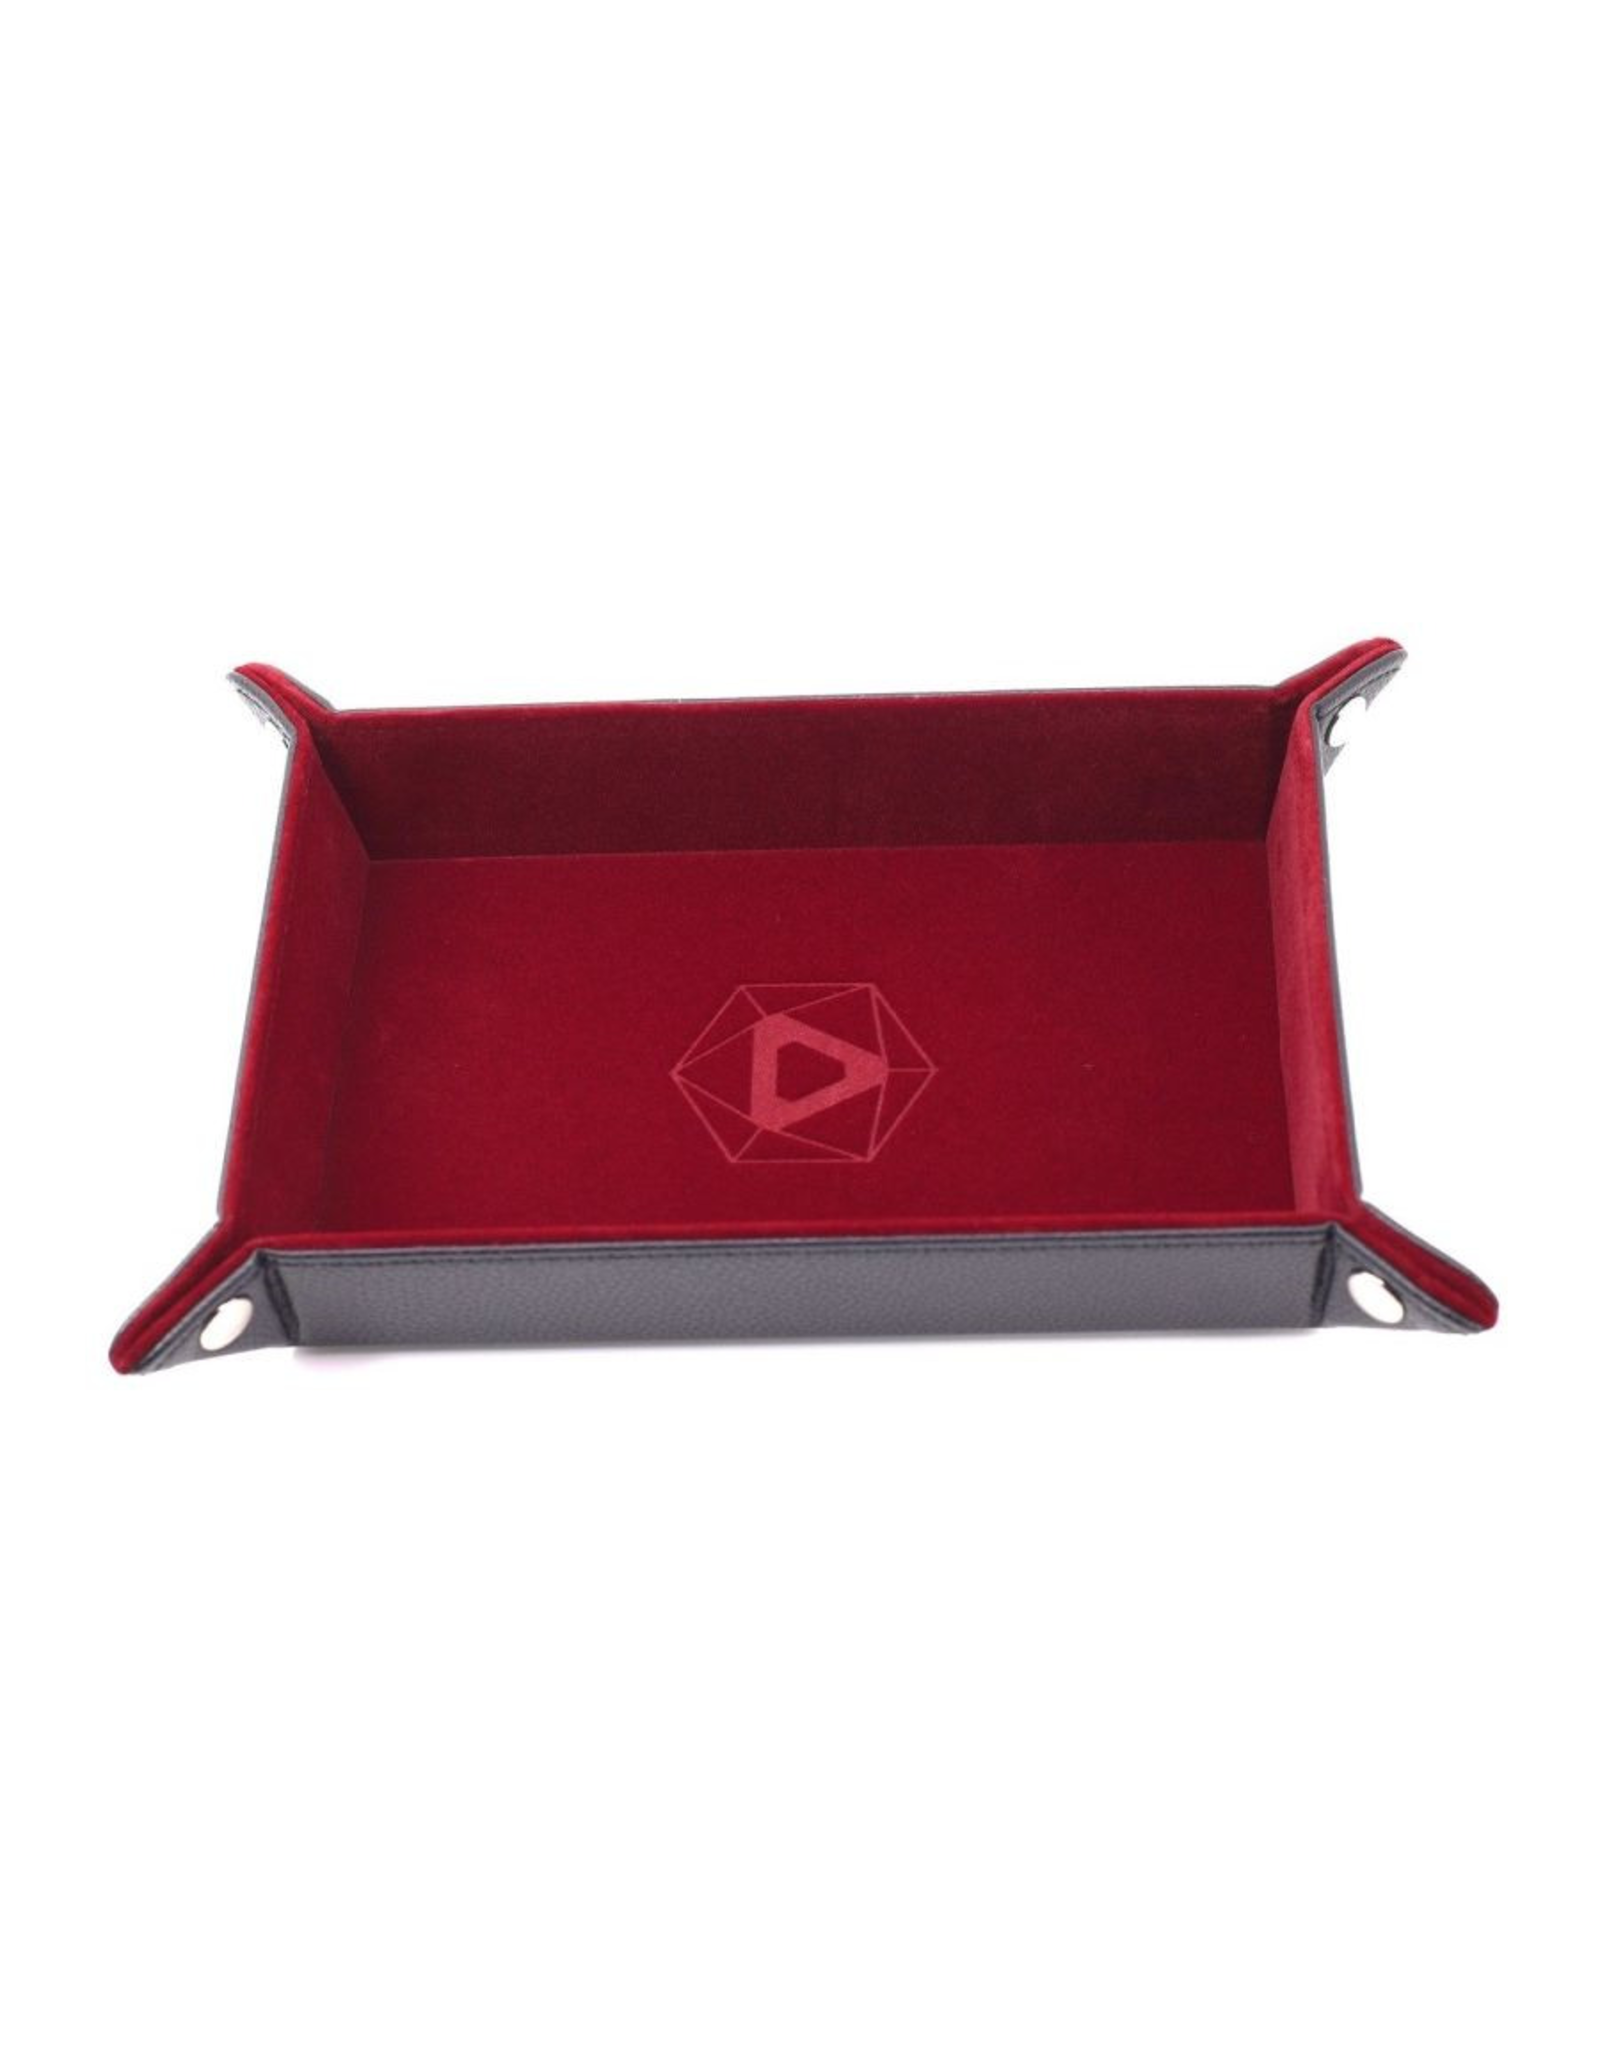 Die Hard Dice Die Hard Dice: Dice Tray Rectangle Red